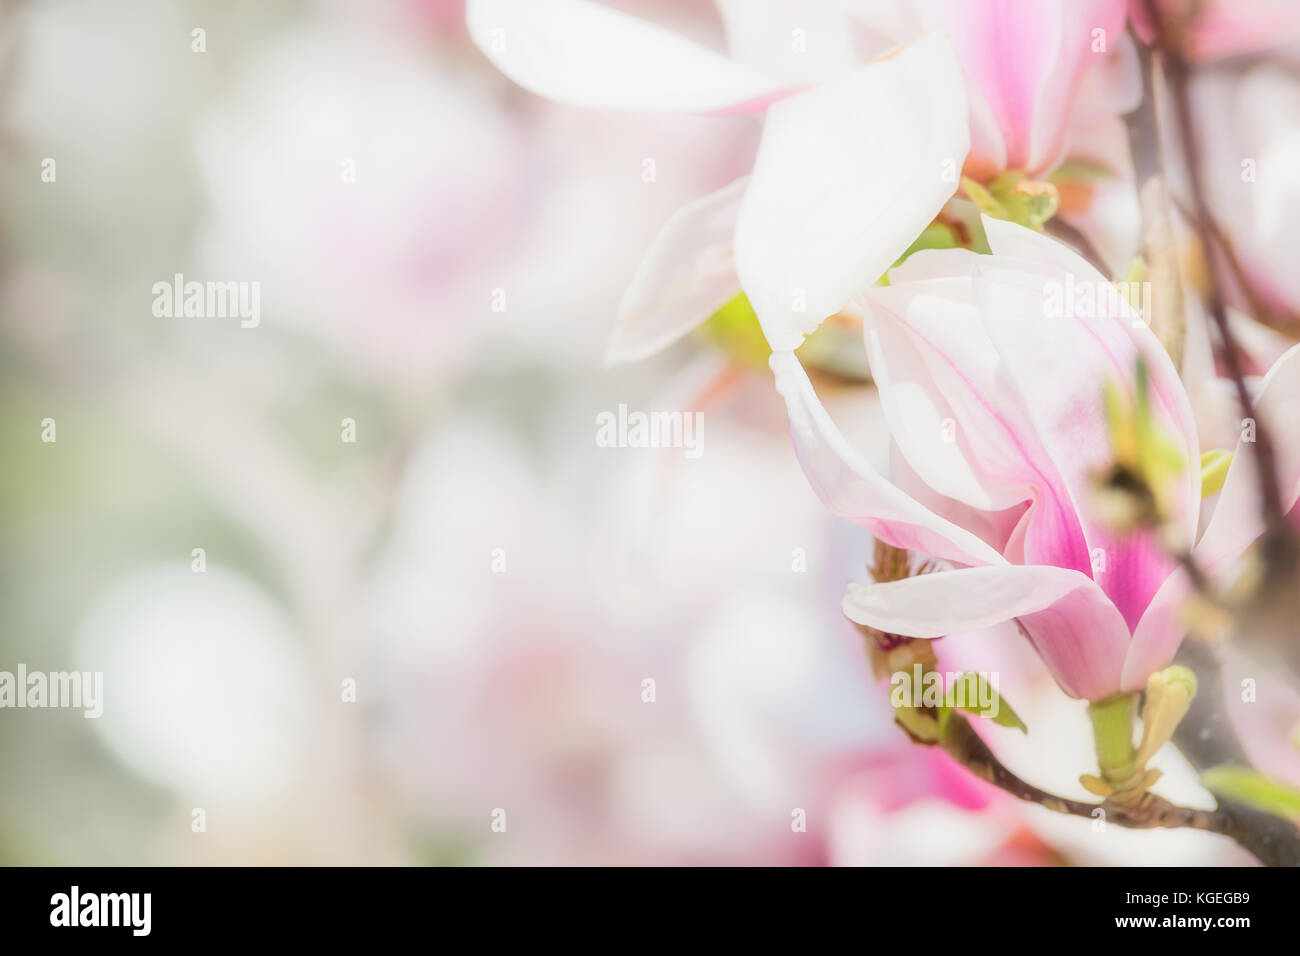 Delicate pink magnolia flowers at blurred blossom of magnolia tree delicate pink magnolia flowers at blurred blossom of magnolia tree springtime nature concept floral border mightylinksfo